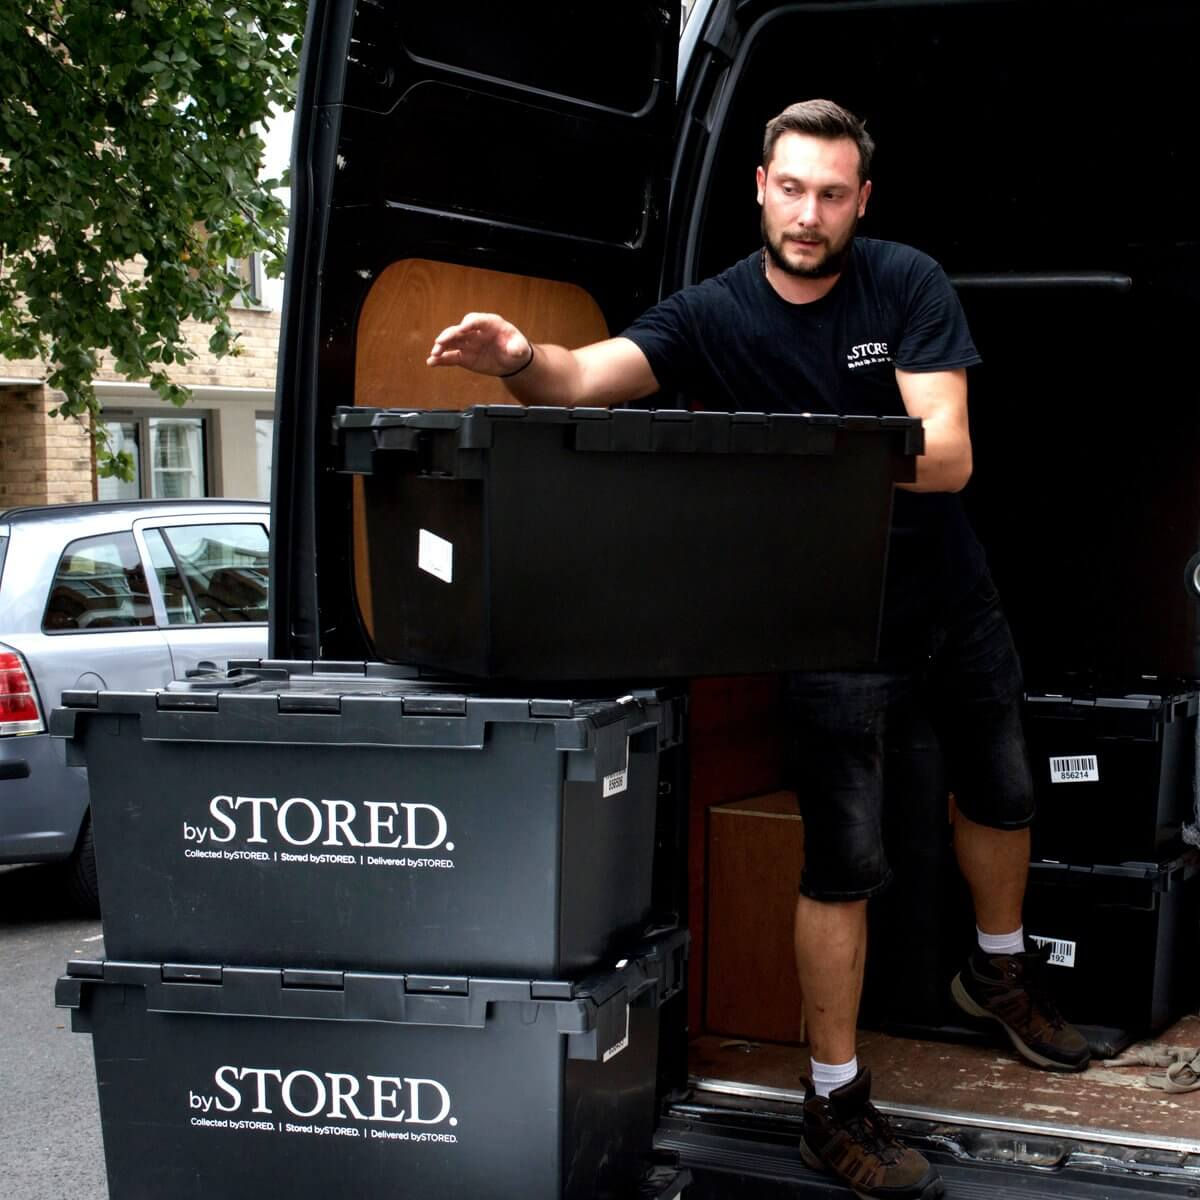 A man during a removal on a removal van.